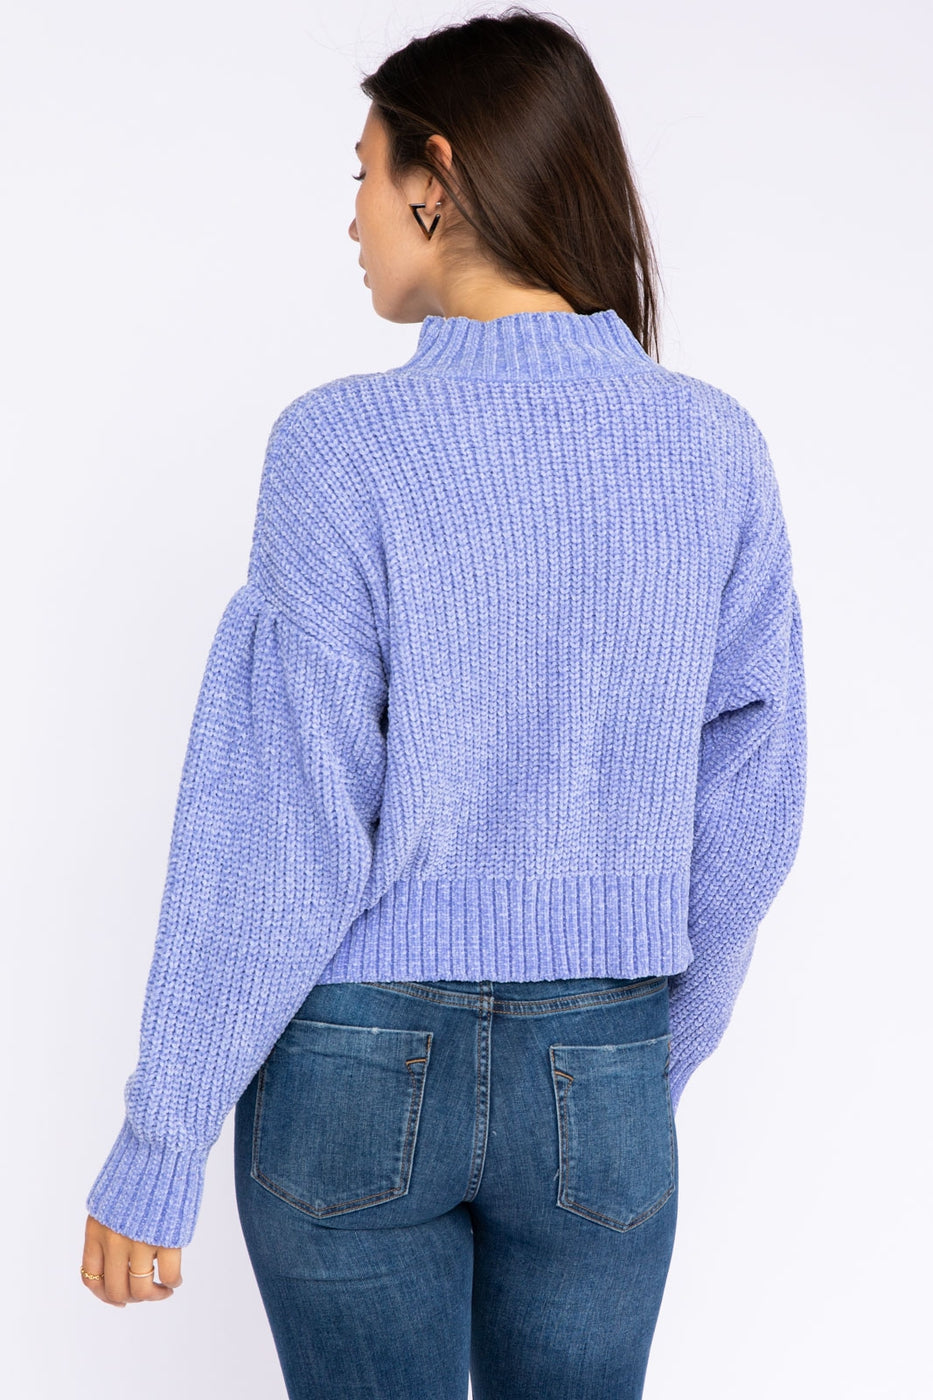 Chenille Mock Neck Drop Shoulder Sweater In Lavender Blue Siin Bees